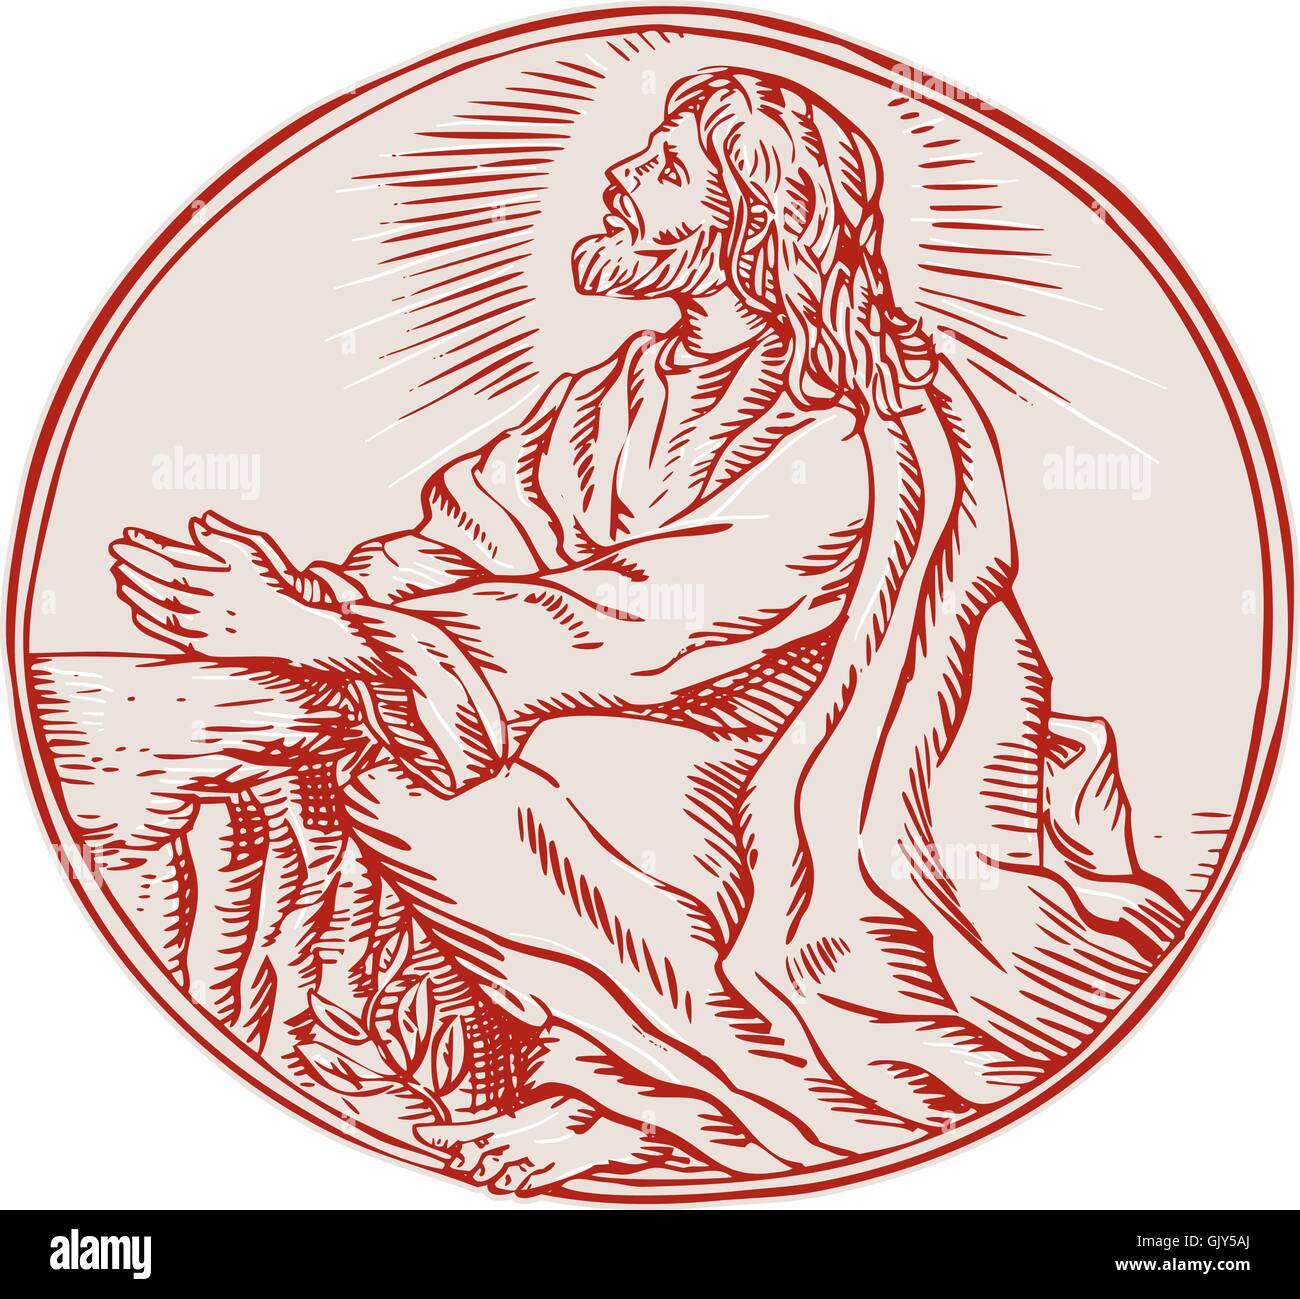 Woodcut Of Christ Stock Vector Images - Alamy